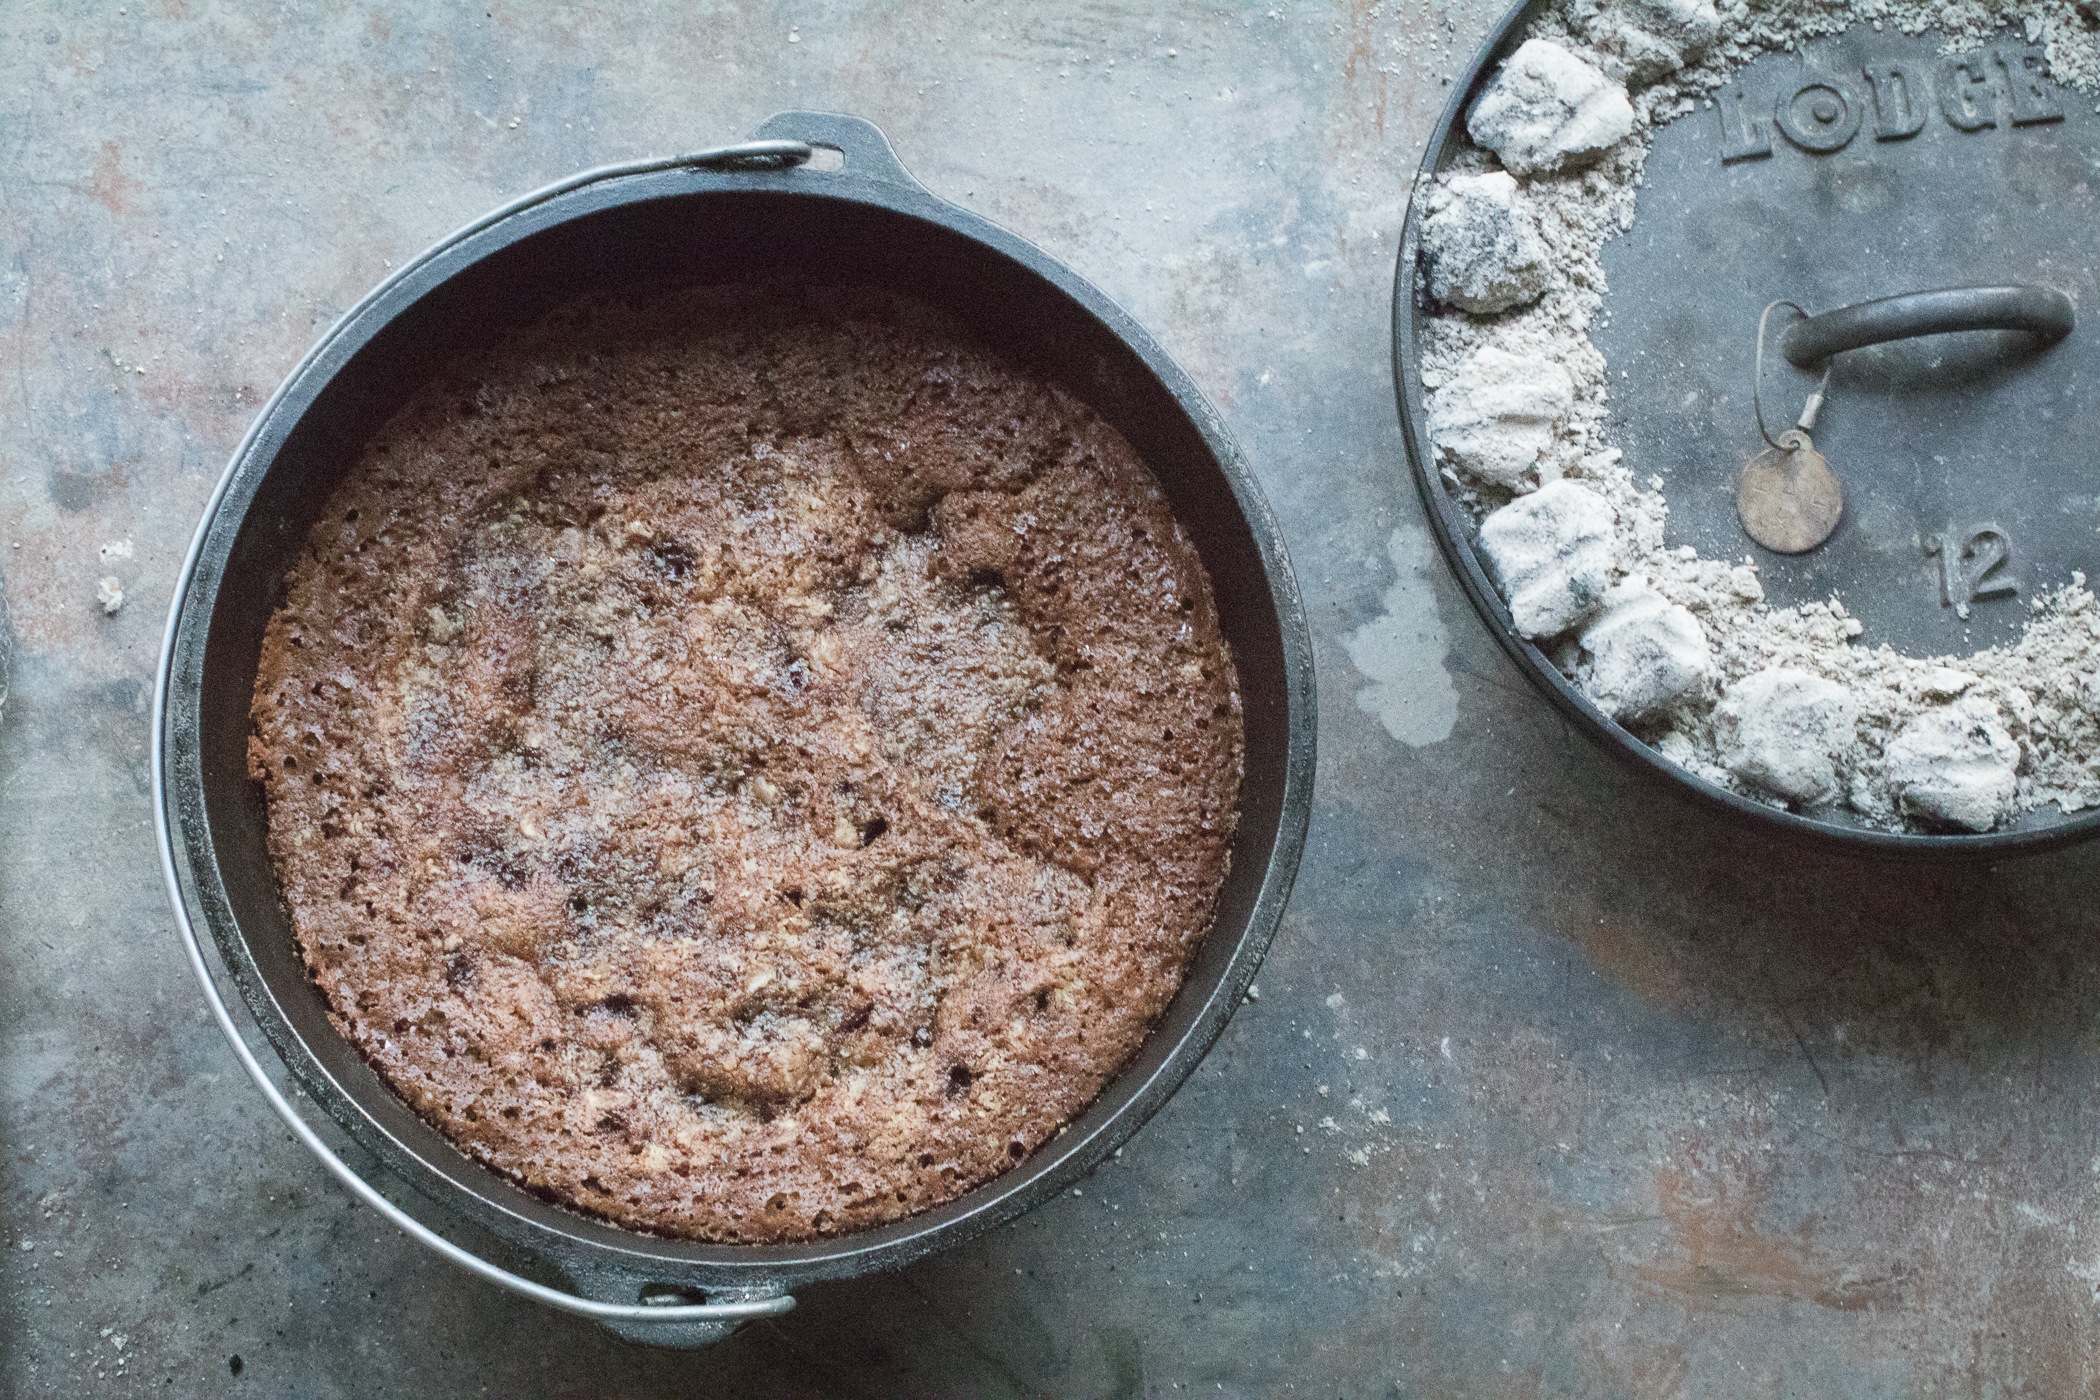 gingerbread-in-camp-dutch-oven